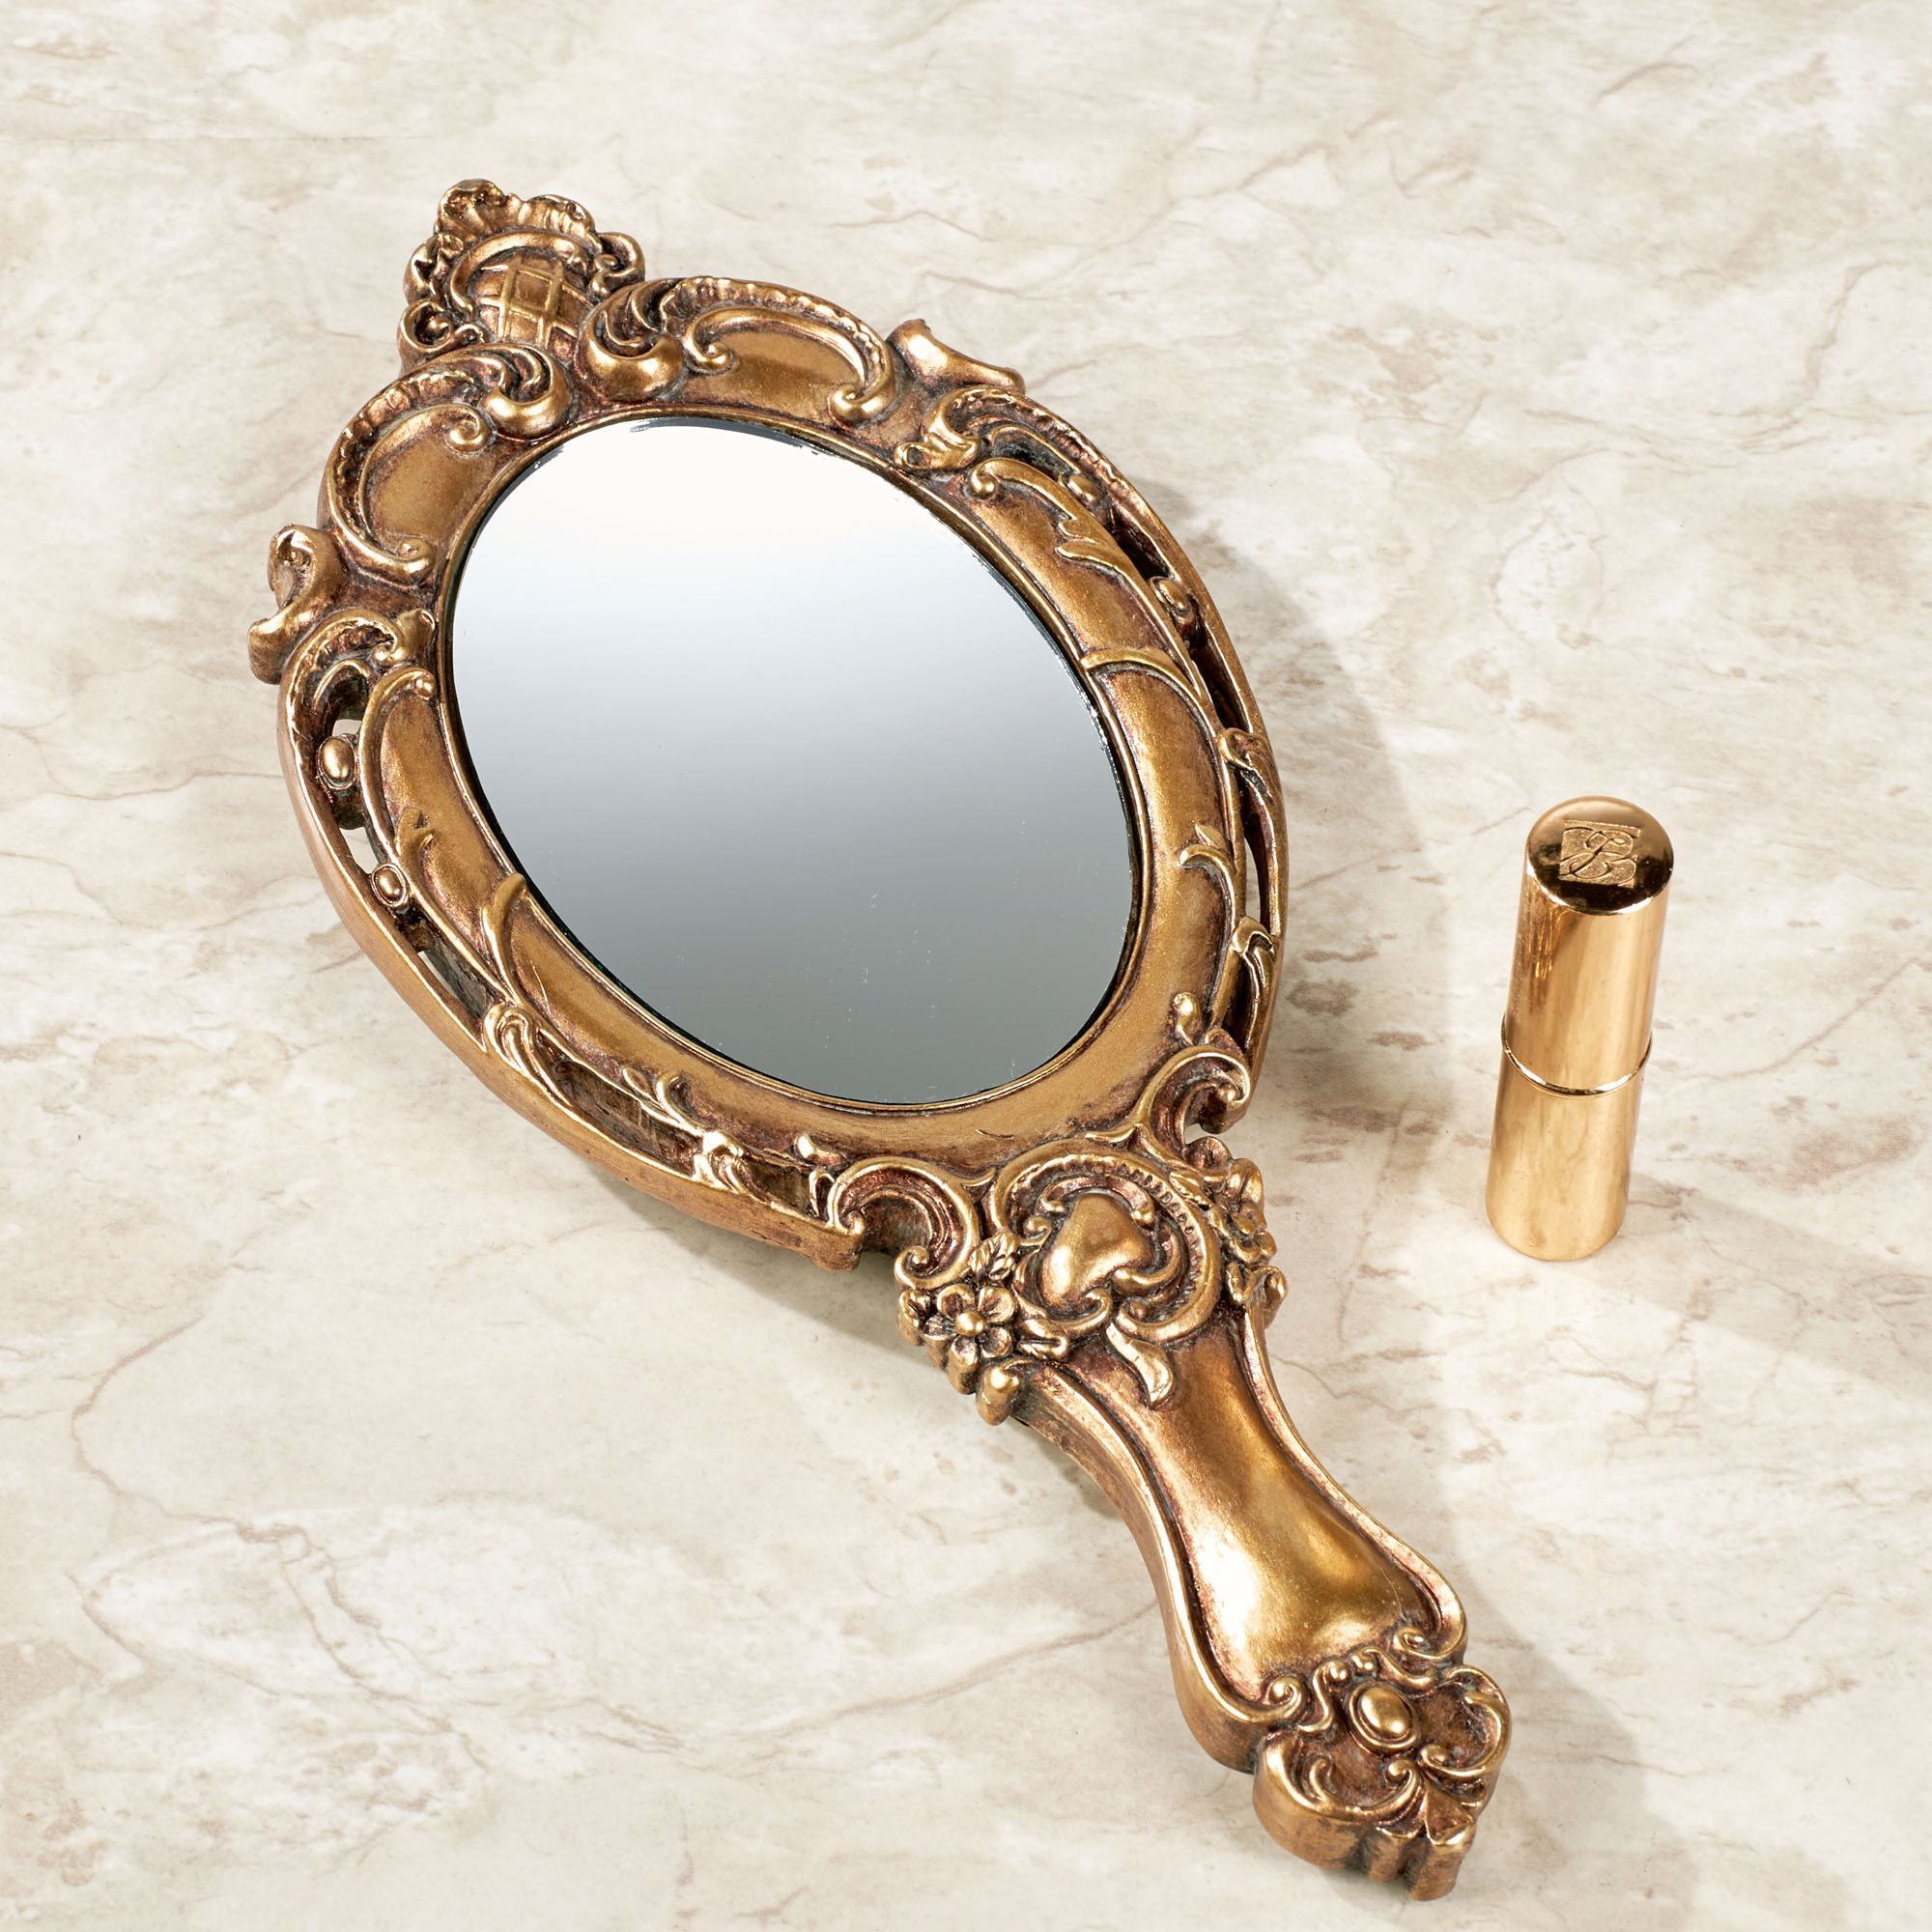 Darling Diora Gold Vanity Hand Mirror